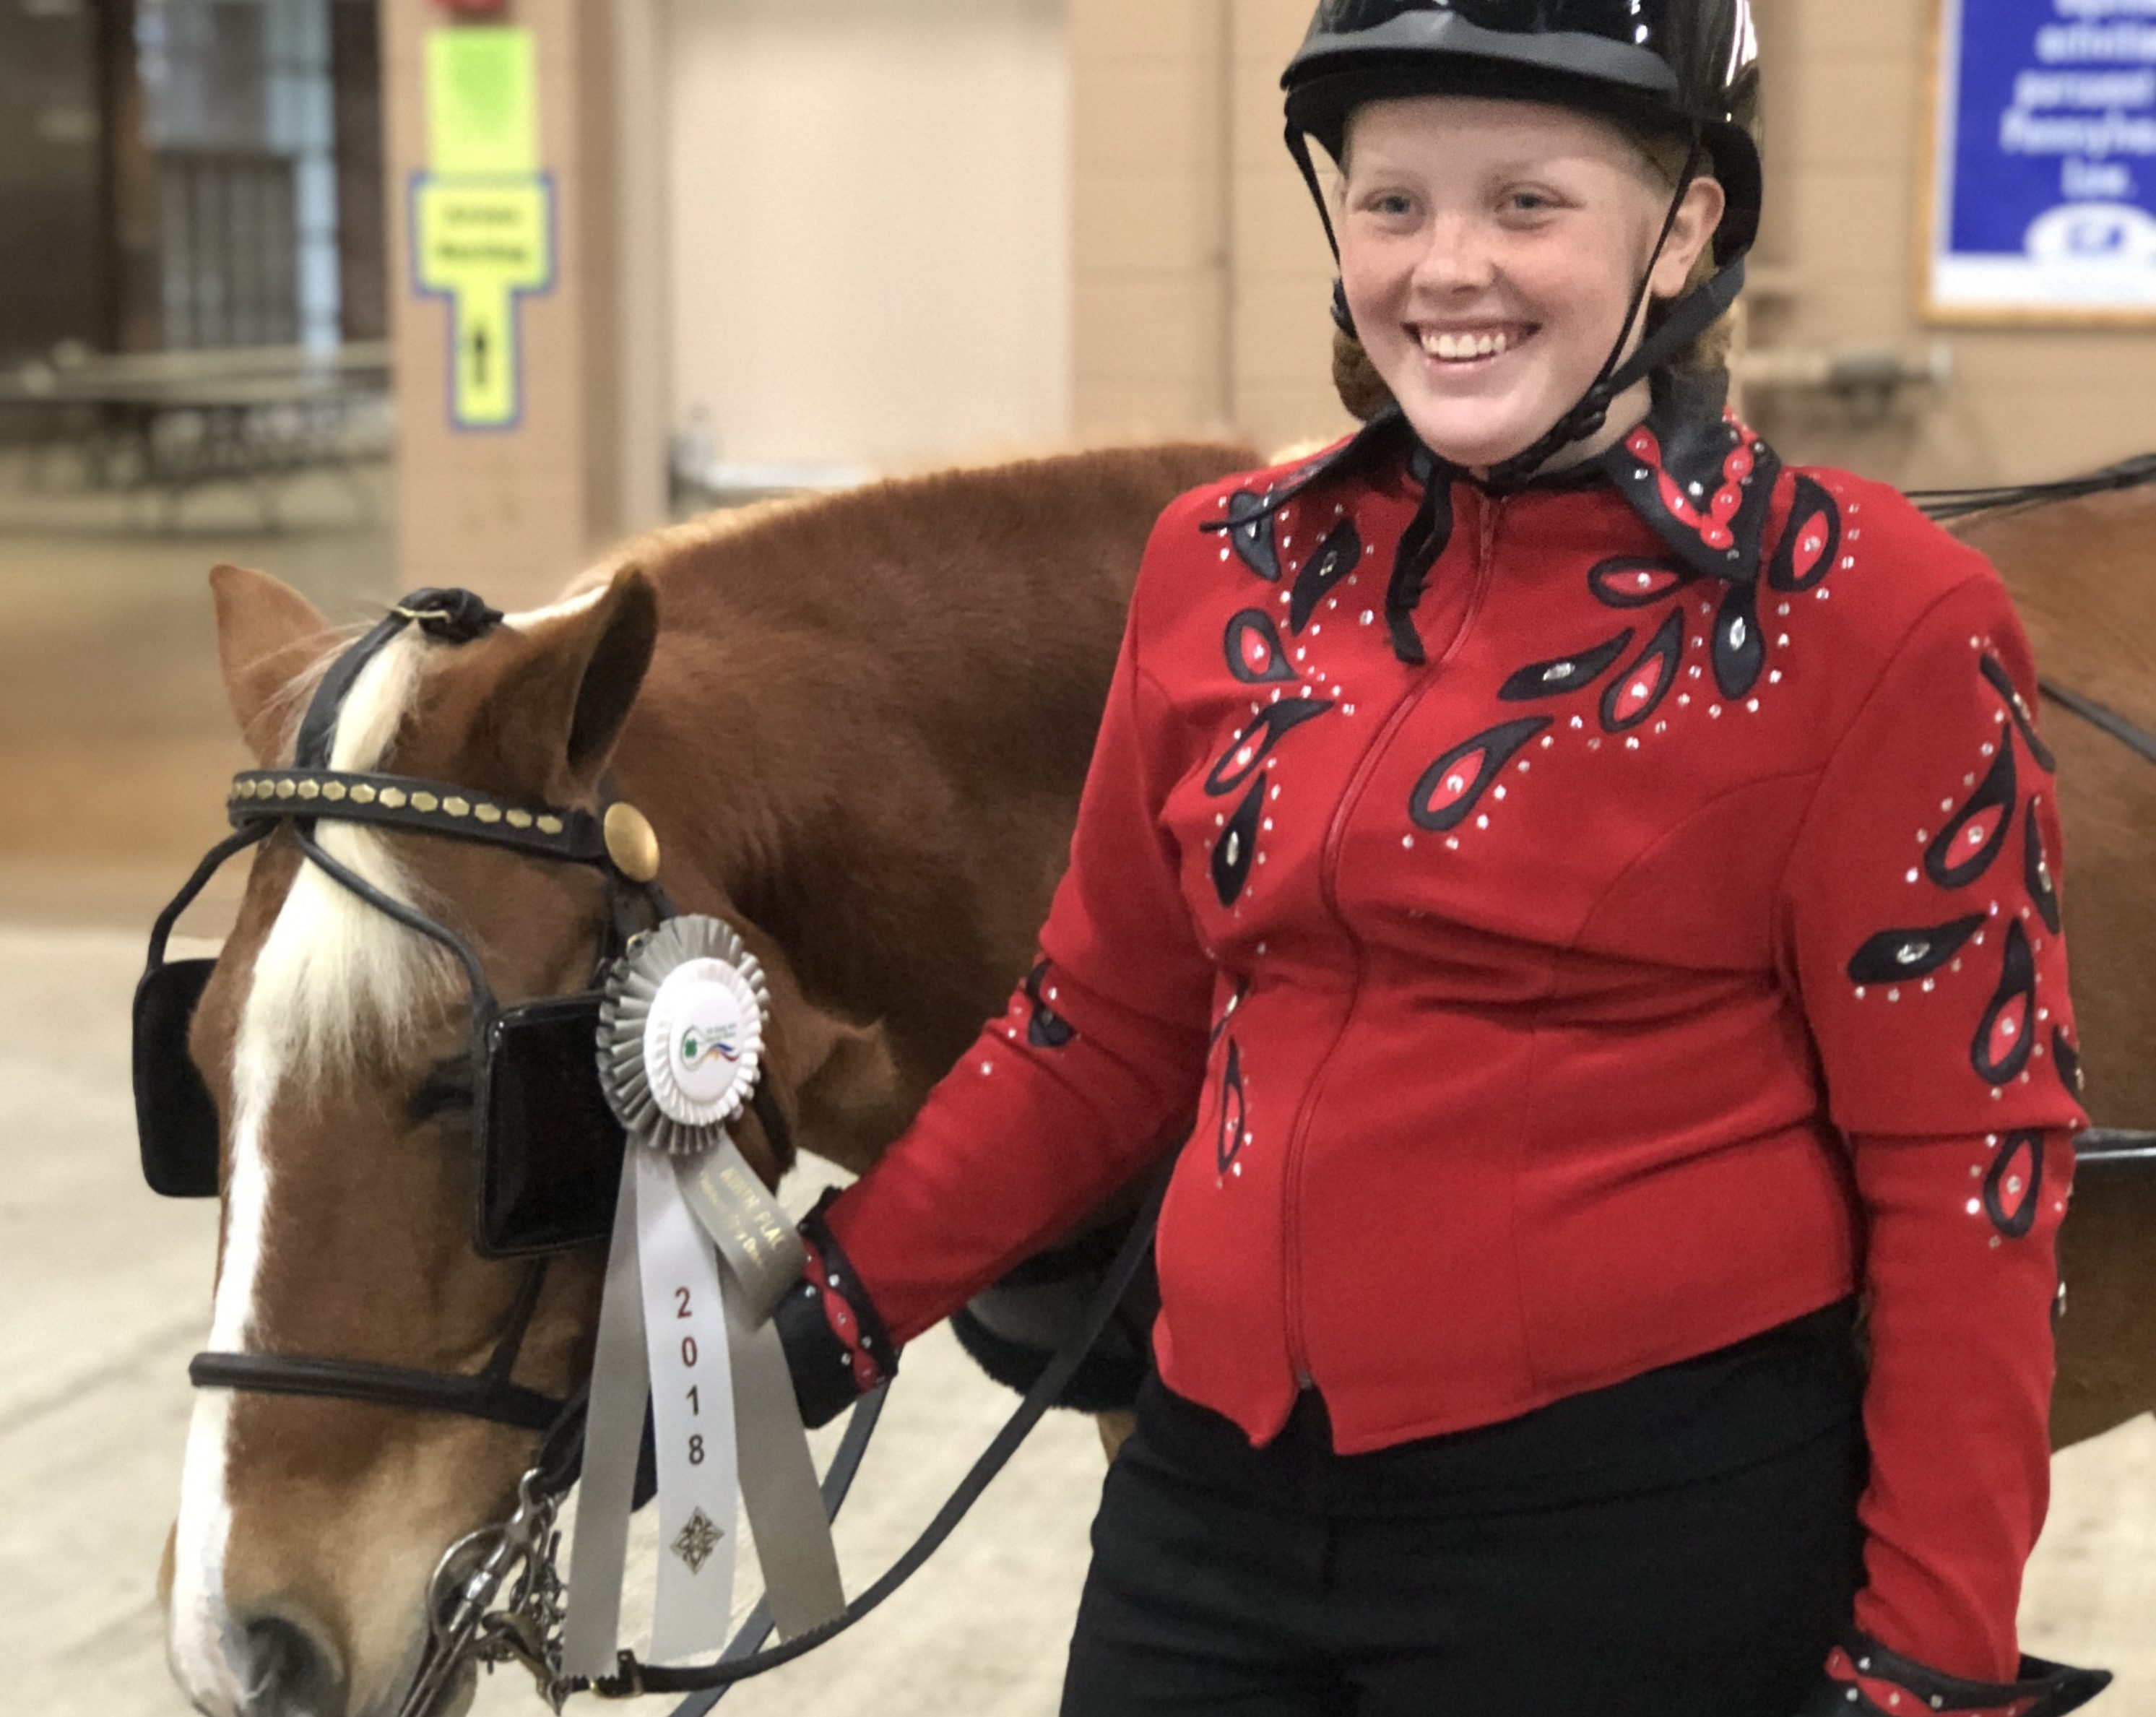 On Saturday, Oct. 27, Milton Hershey School sophomore Kloé Cunningham competed at the 2018 Pennsylvania State 4-H Horse Show